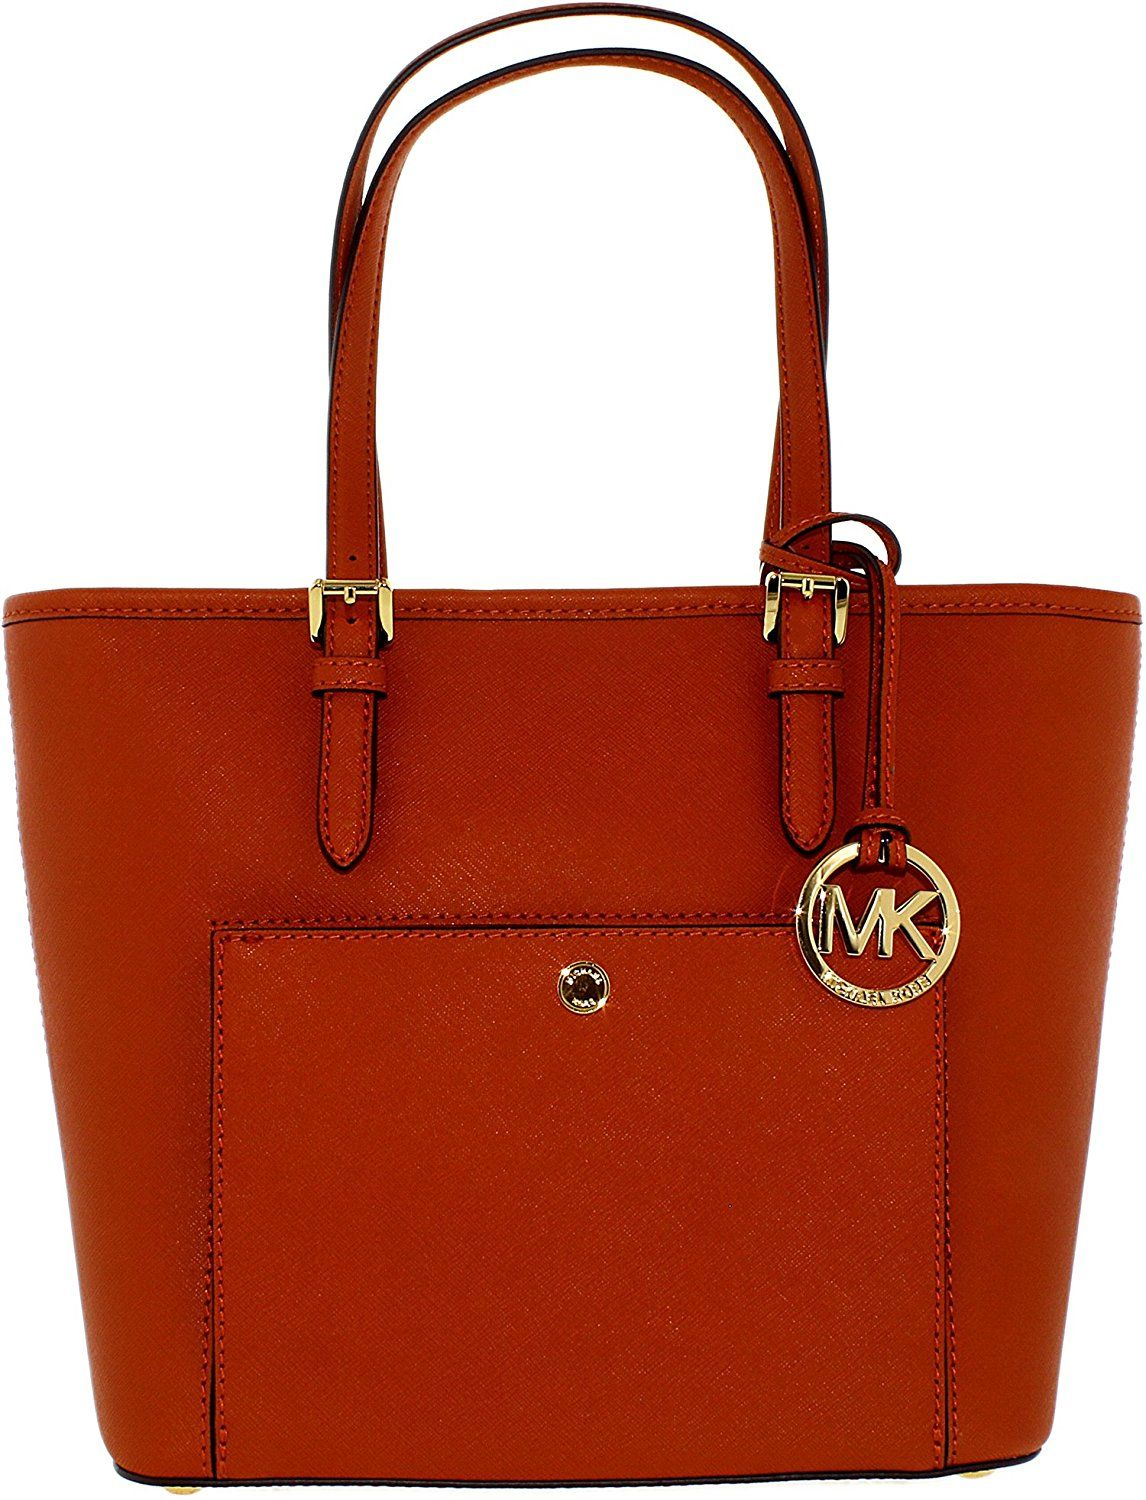 d70f3052da60 Michael Kors Jet Set Item Medium Top Zip Snap Pocket Tote Saffiano Leather  18K  Handbags  Amazon.com